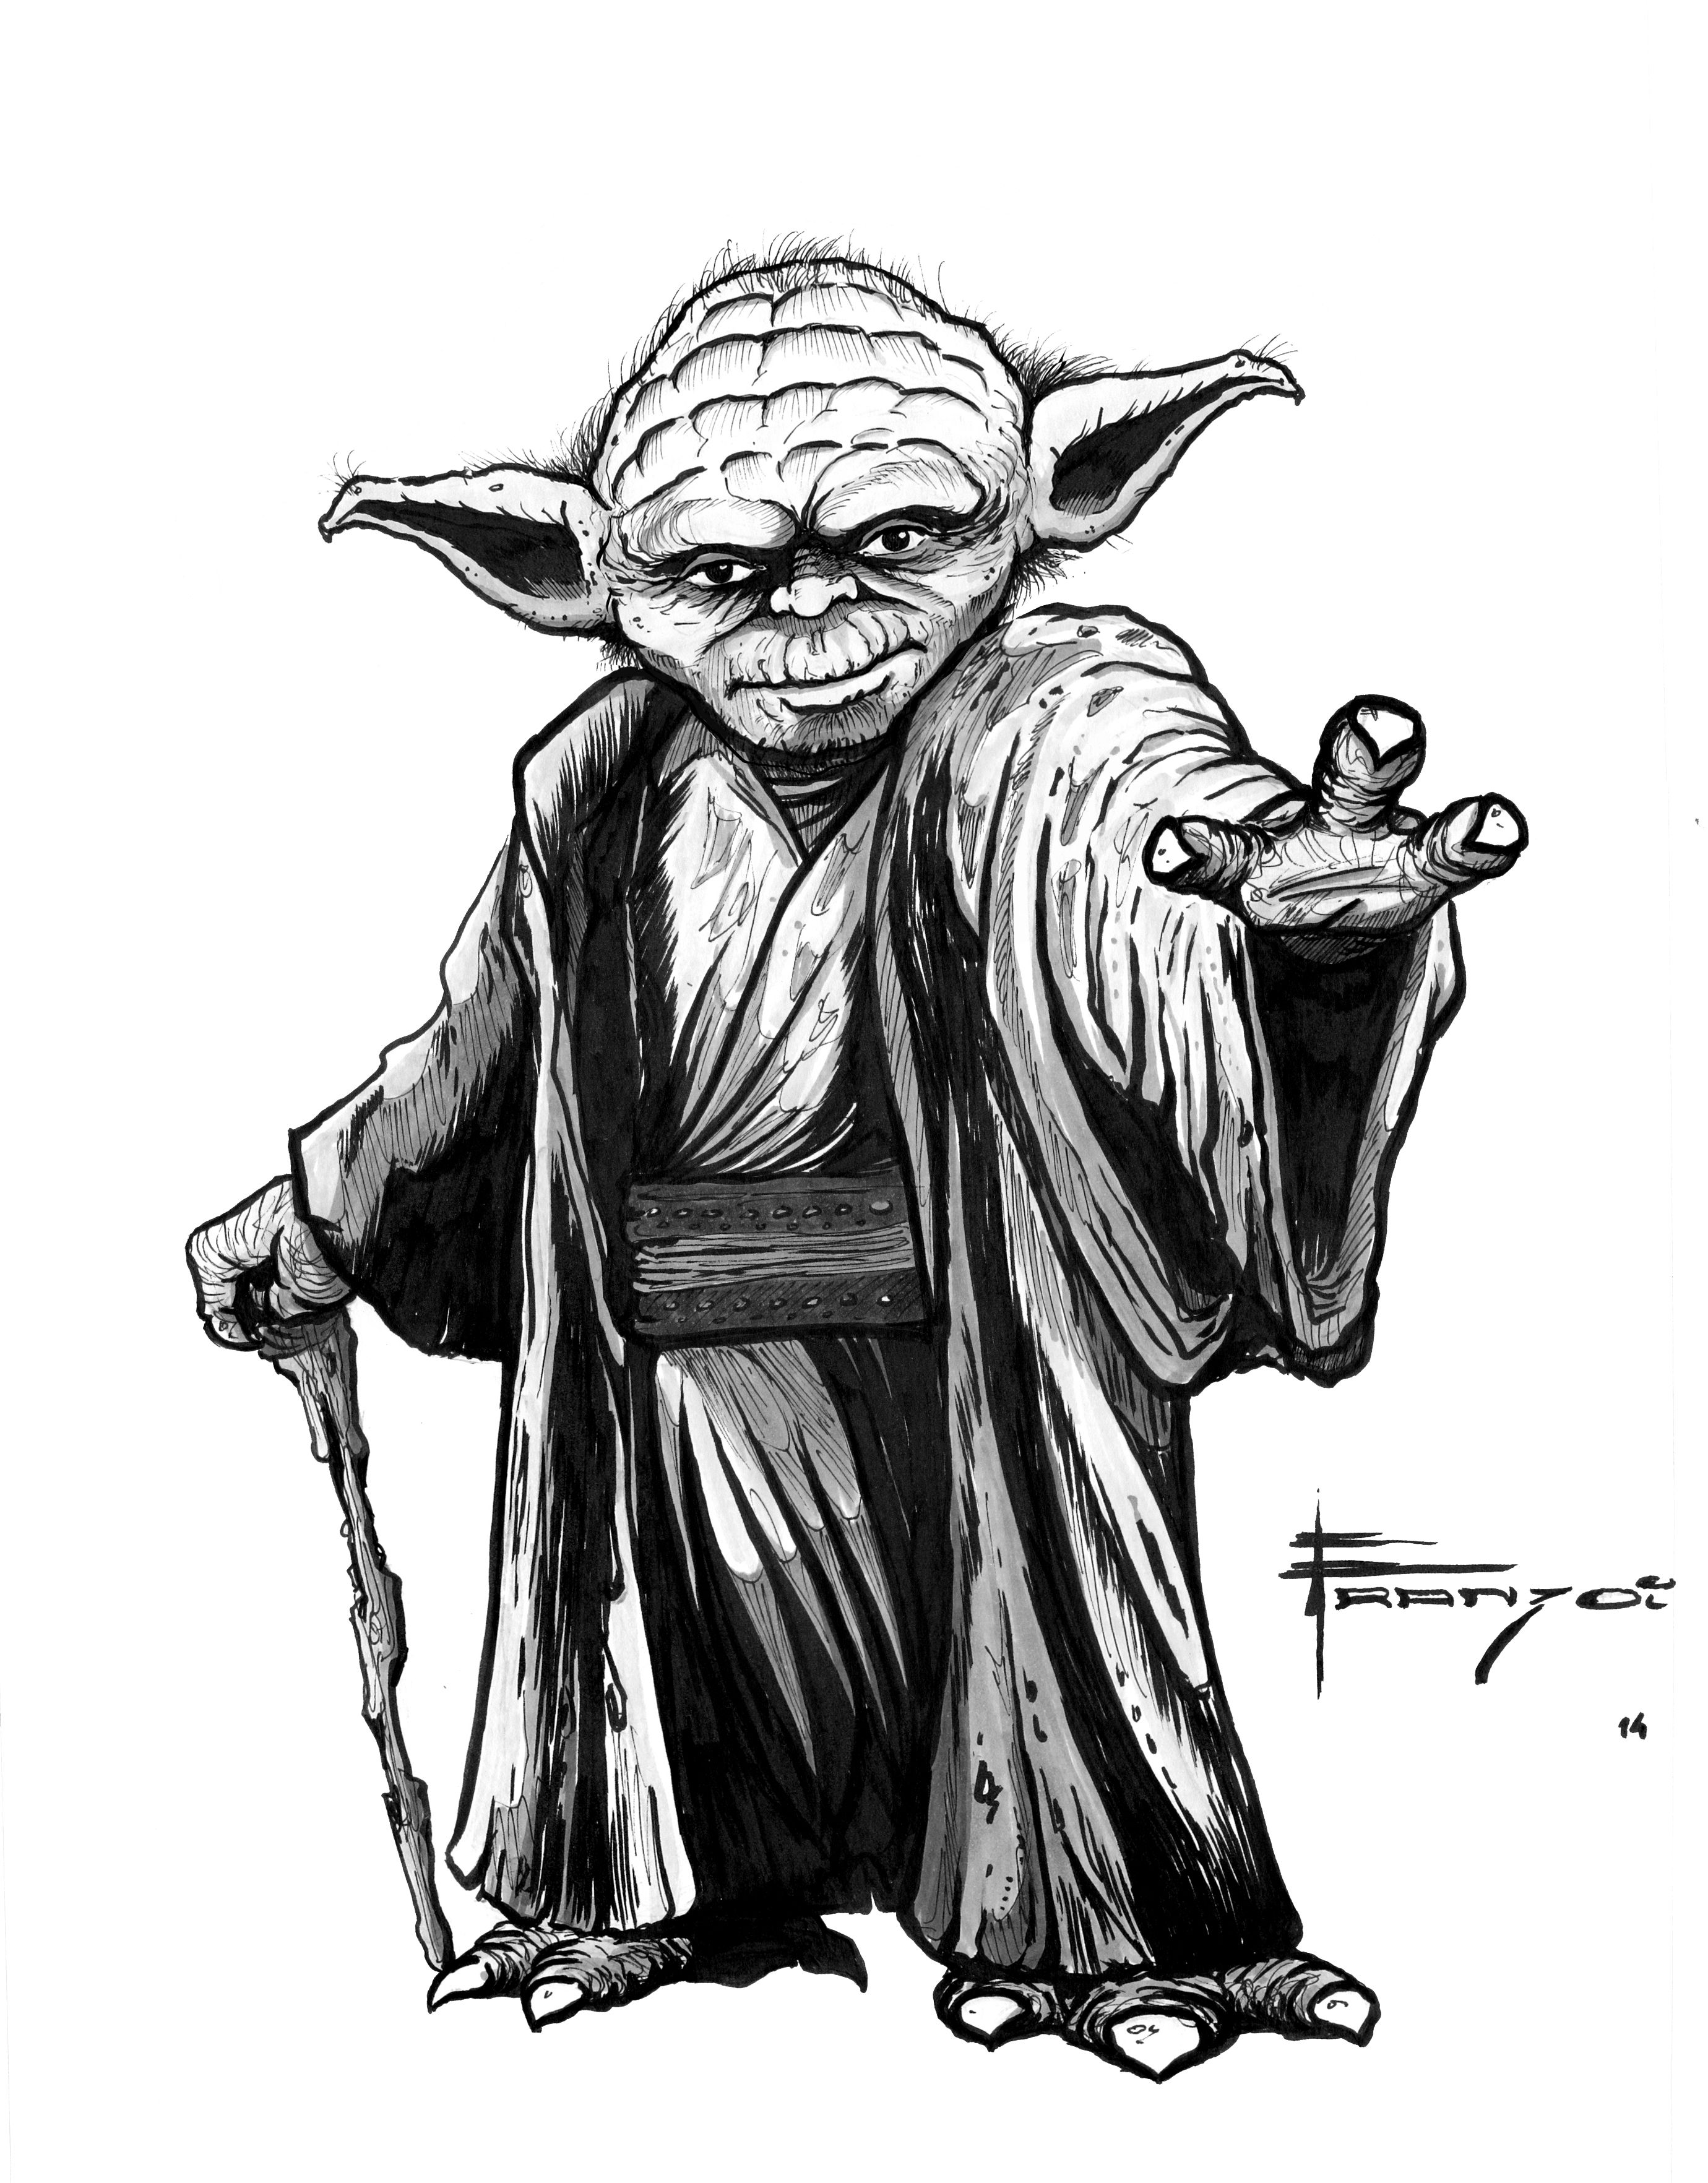 drawings of star wars characters star wars friday the old republic character sketches star characters wars drawings of